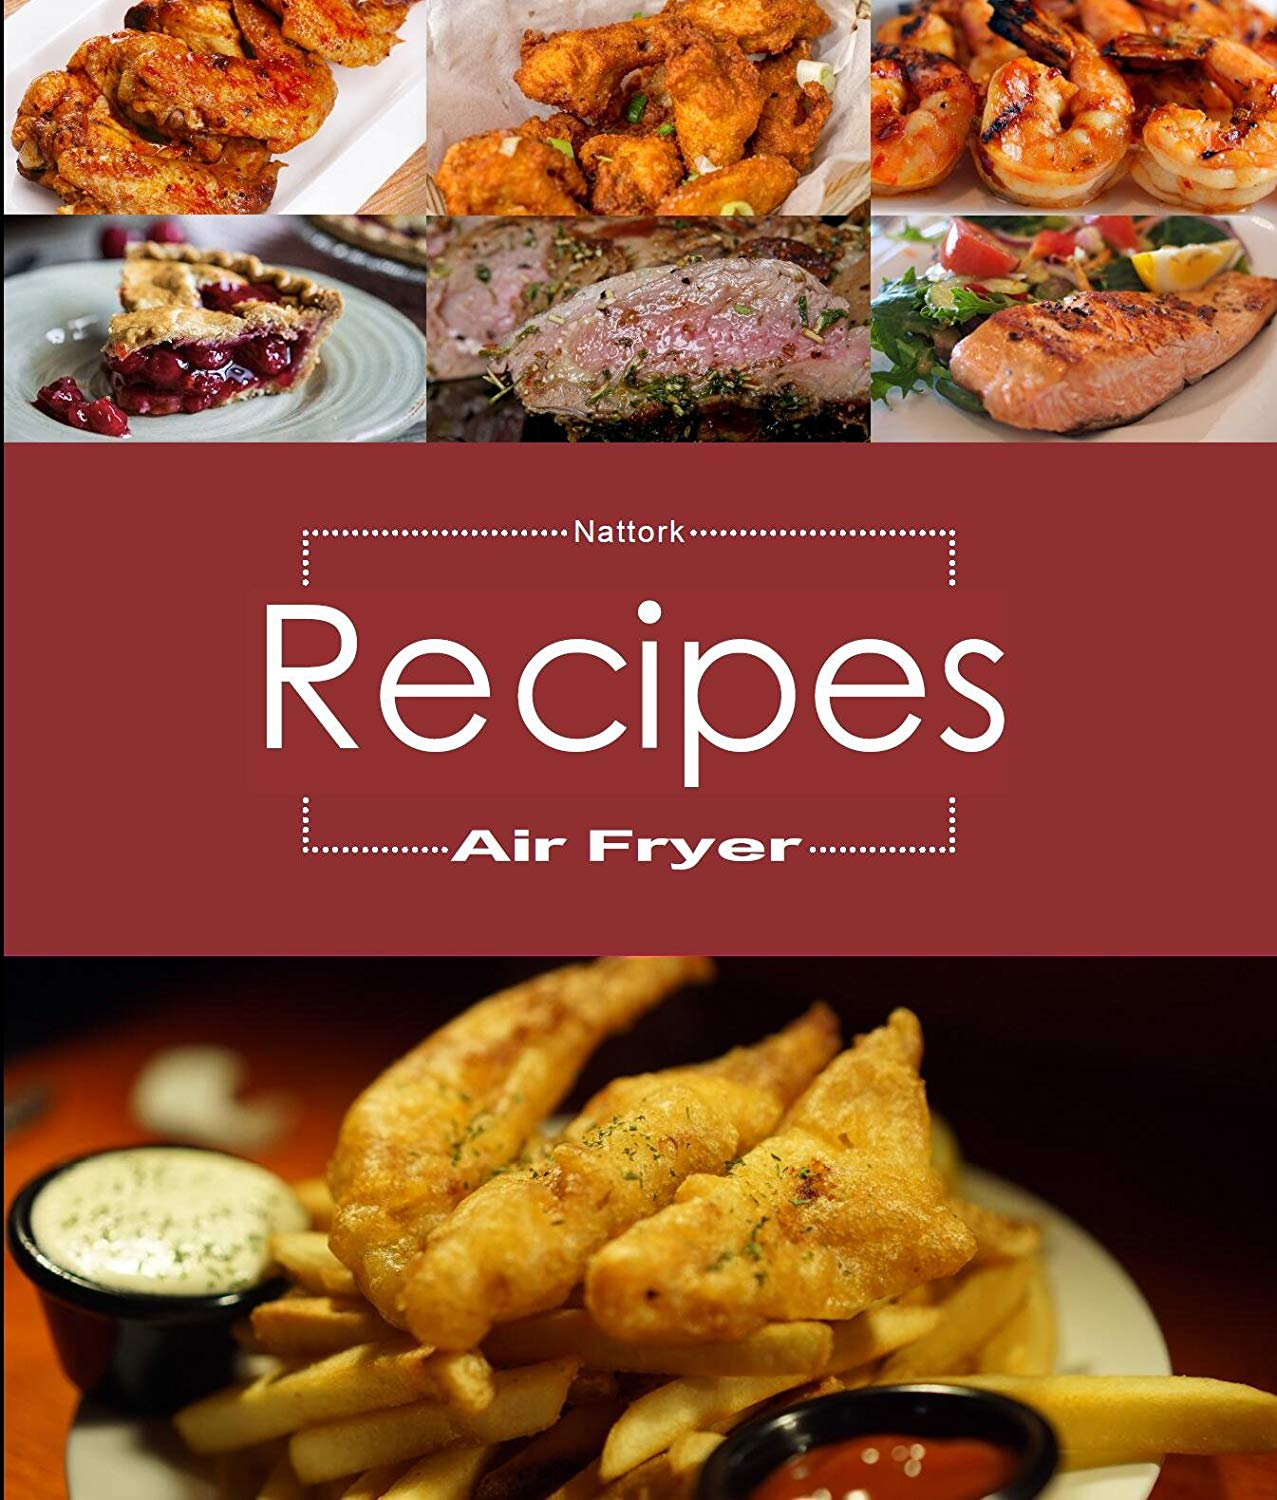 Air Fryer Cookbook: Simple, Easy and Delicious Air Fryer Recipes That Anyone Can Cook,Provide 30+ Recipes of Home cooked food and desserts for Your Air Fryer Cooking at Home